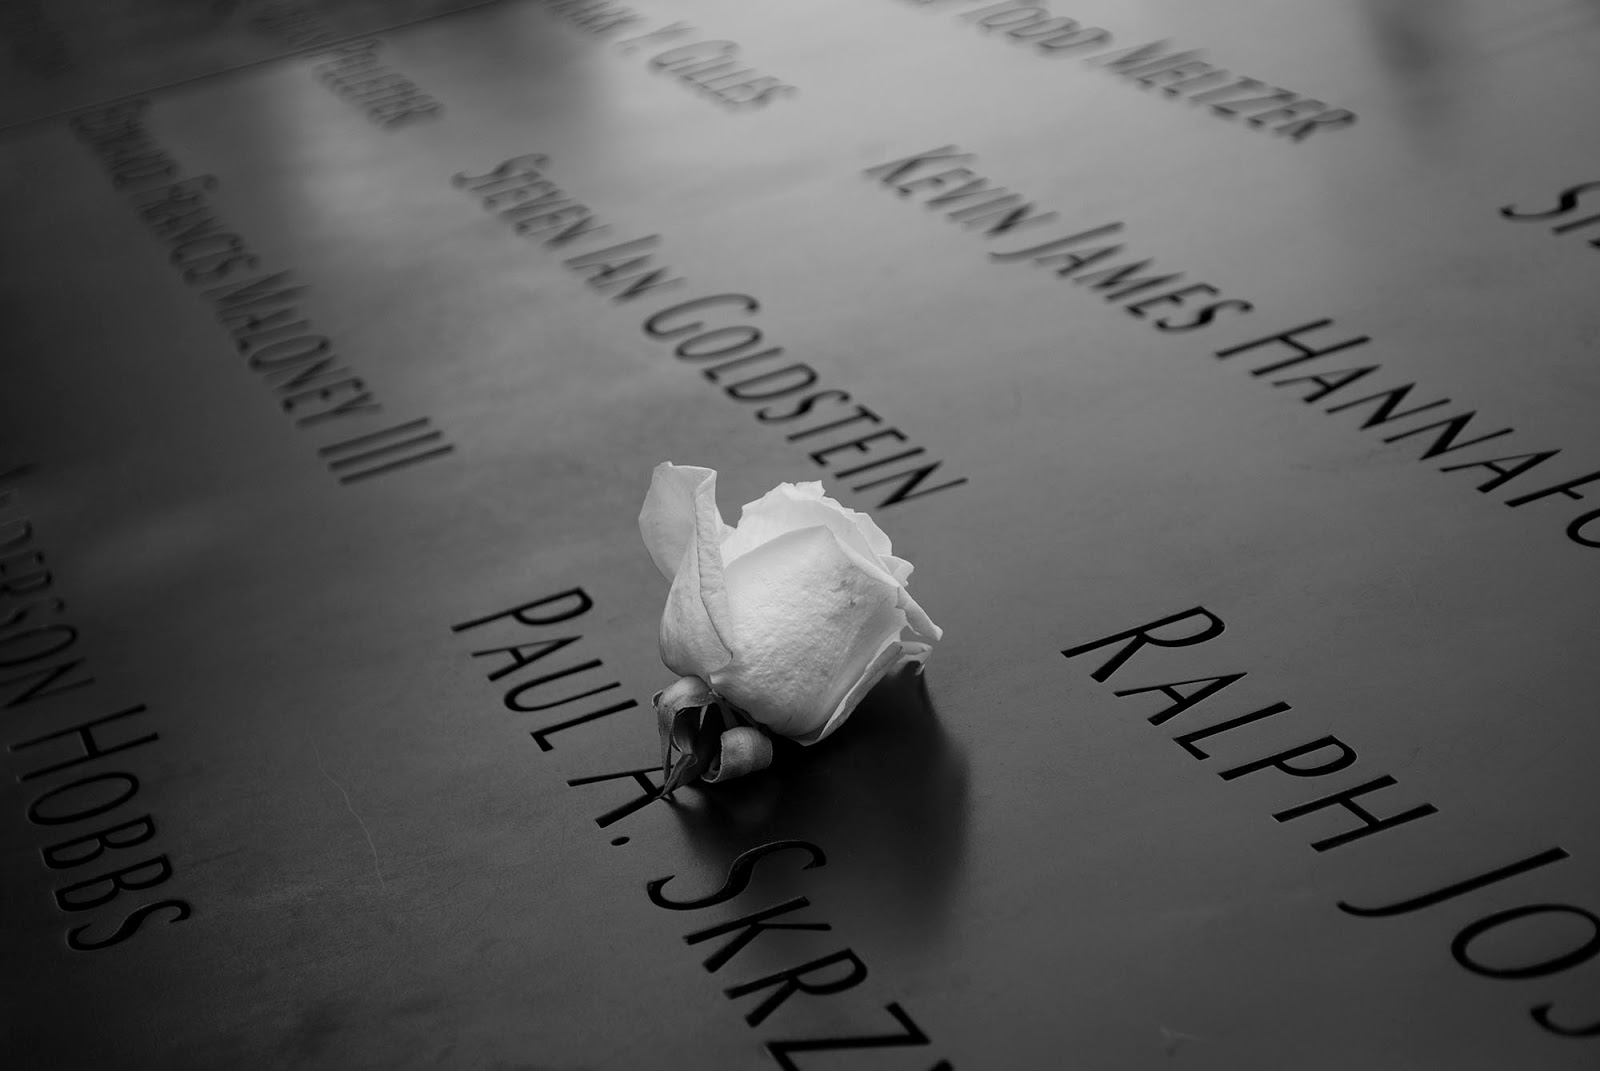 north south pool wtc 911 memorial white rose